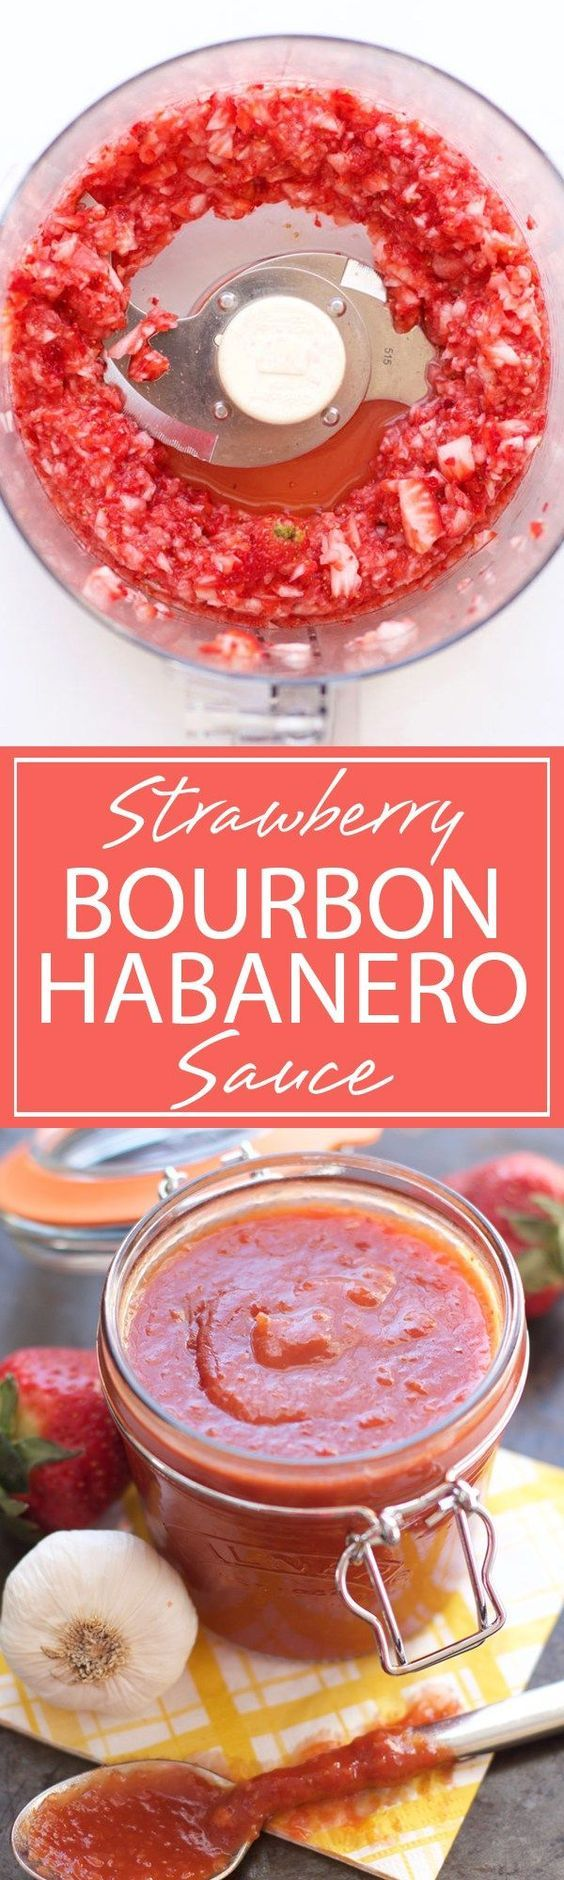 Best 25 sauce ideas on Pinterest | Barbecue sauce, Bbq sauces and ...